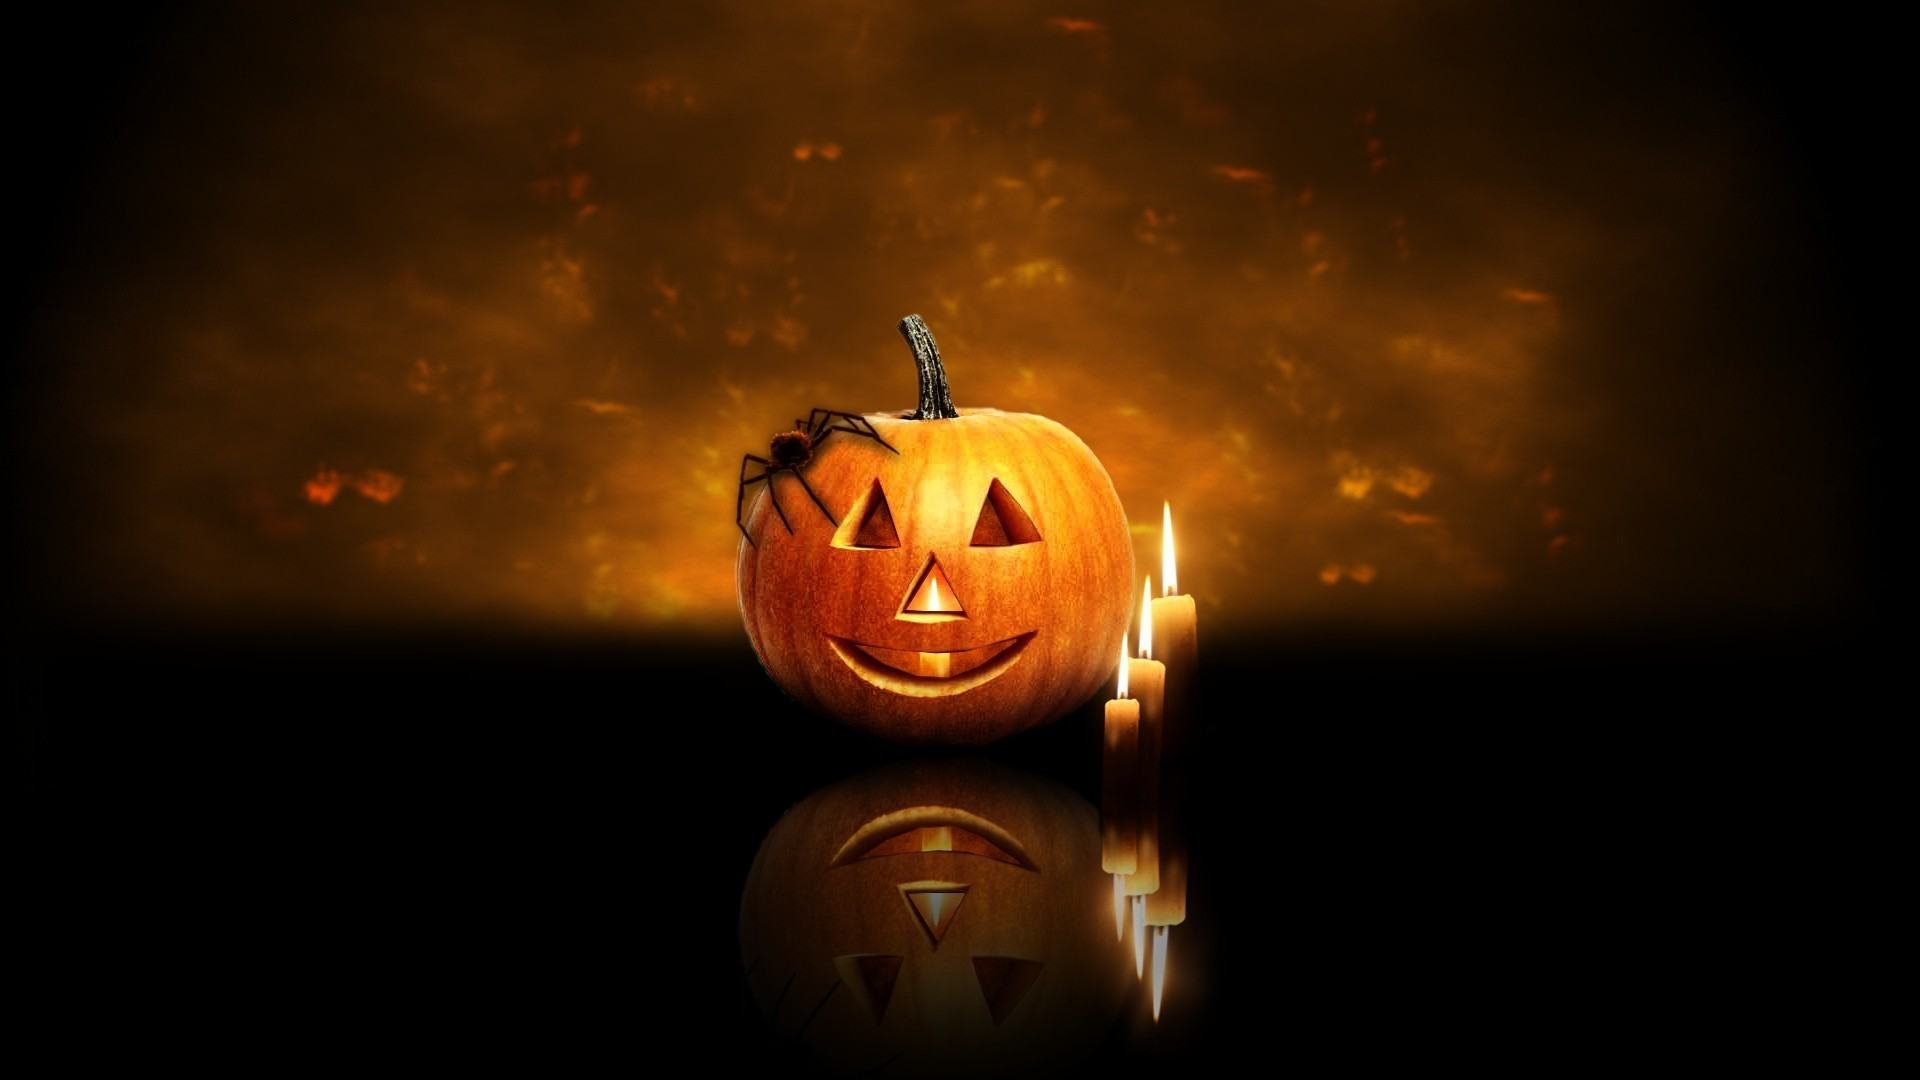 Res: 1920x1080, Animated Halloween Wallpapers with Music - WallpaperSafari